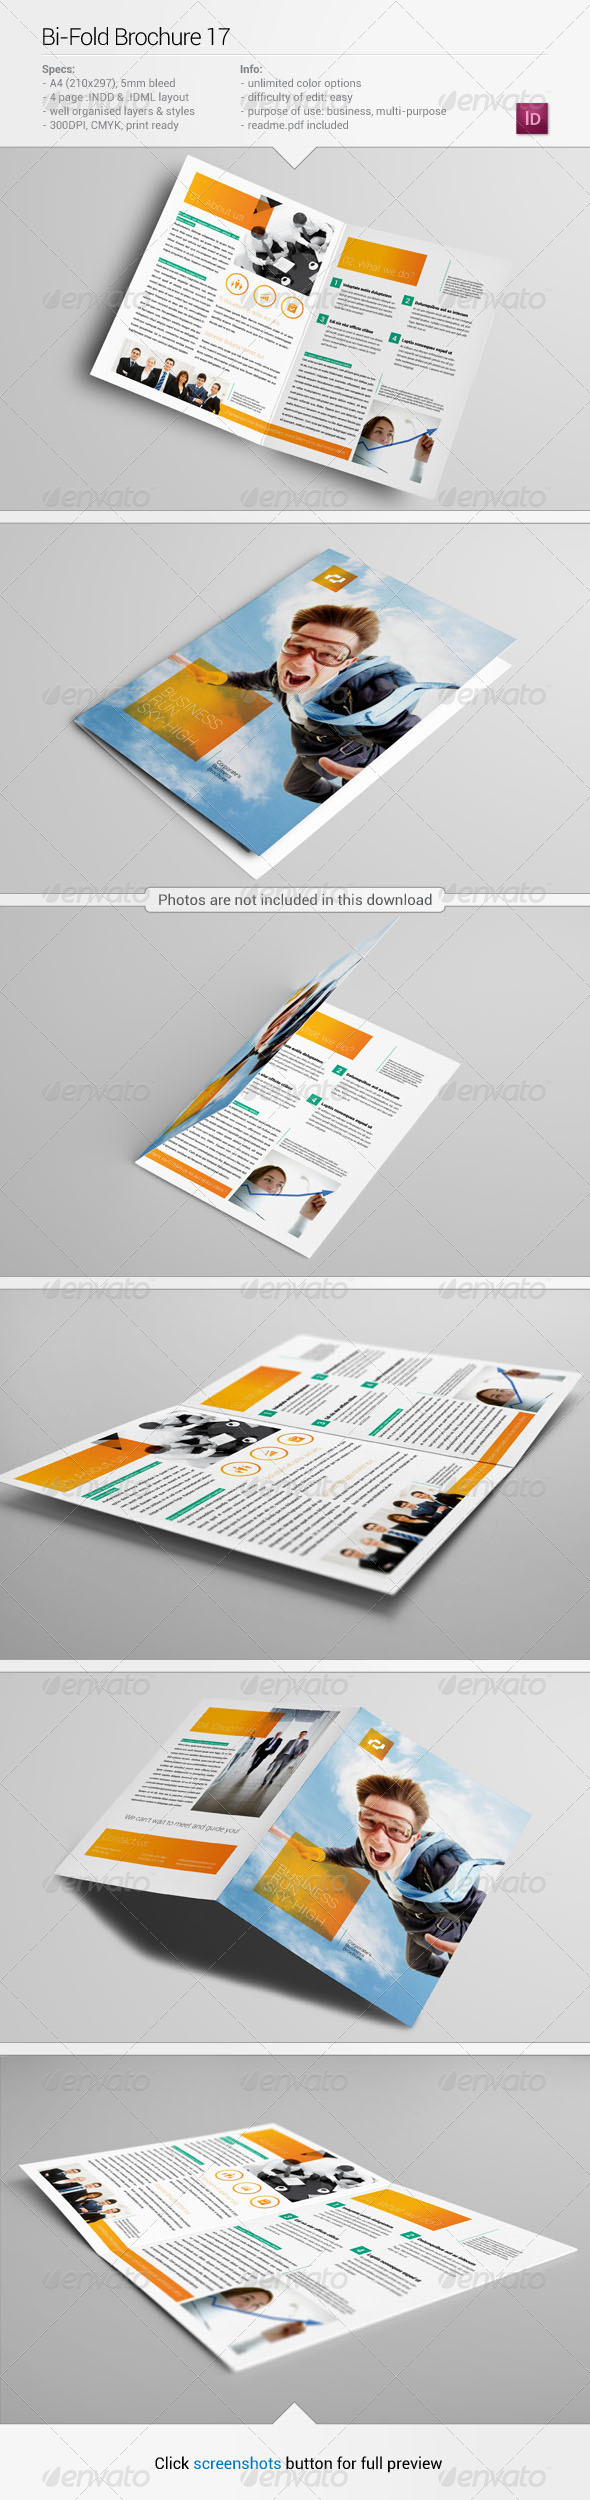 Bi fold brochure 17 corporate brochures for Bi fold brochure template indesign